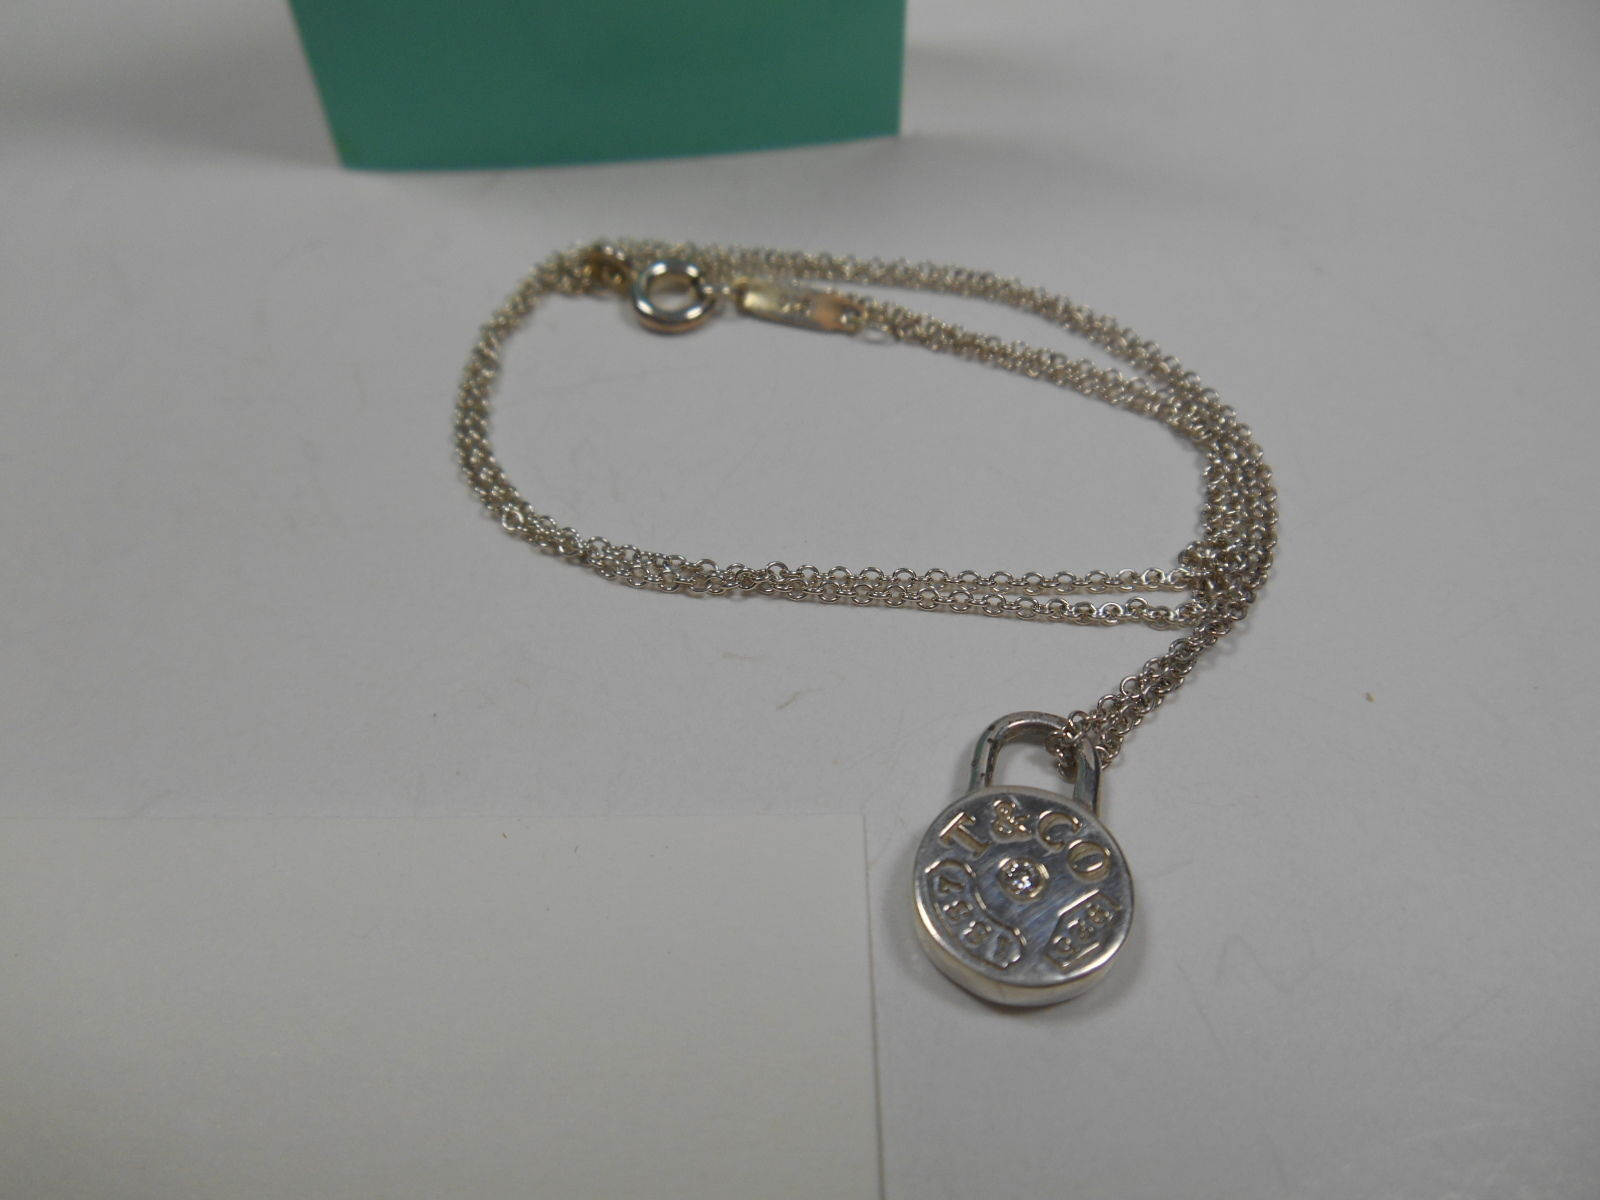 Primary image for Tiffany & Co. 1837 Diamond Round Padlock Necklace Charm Pendant $875 Sterling